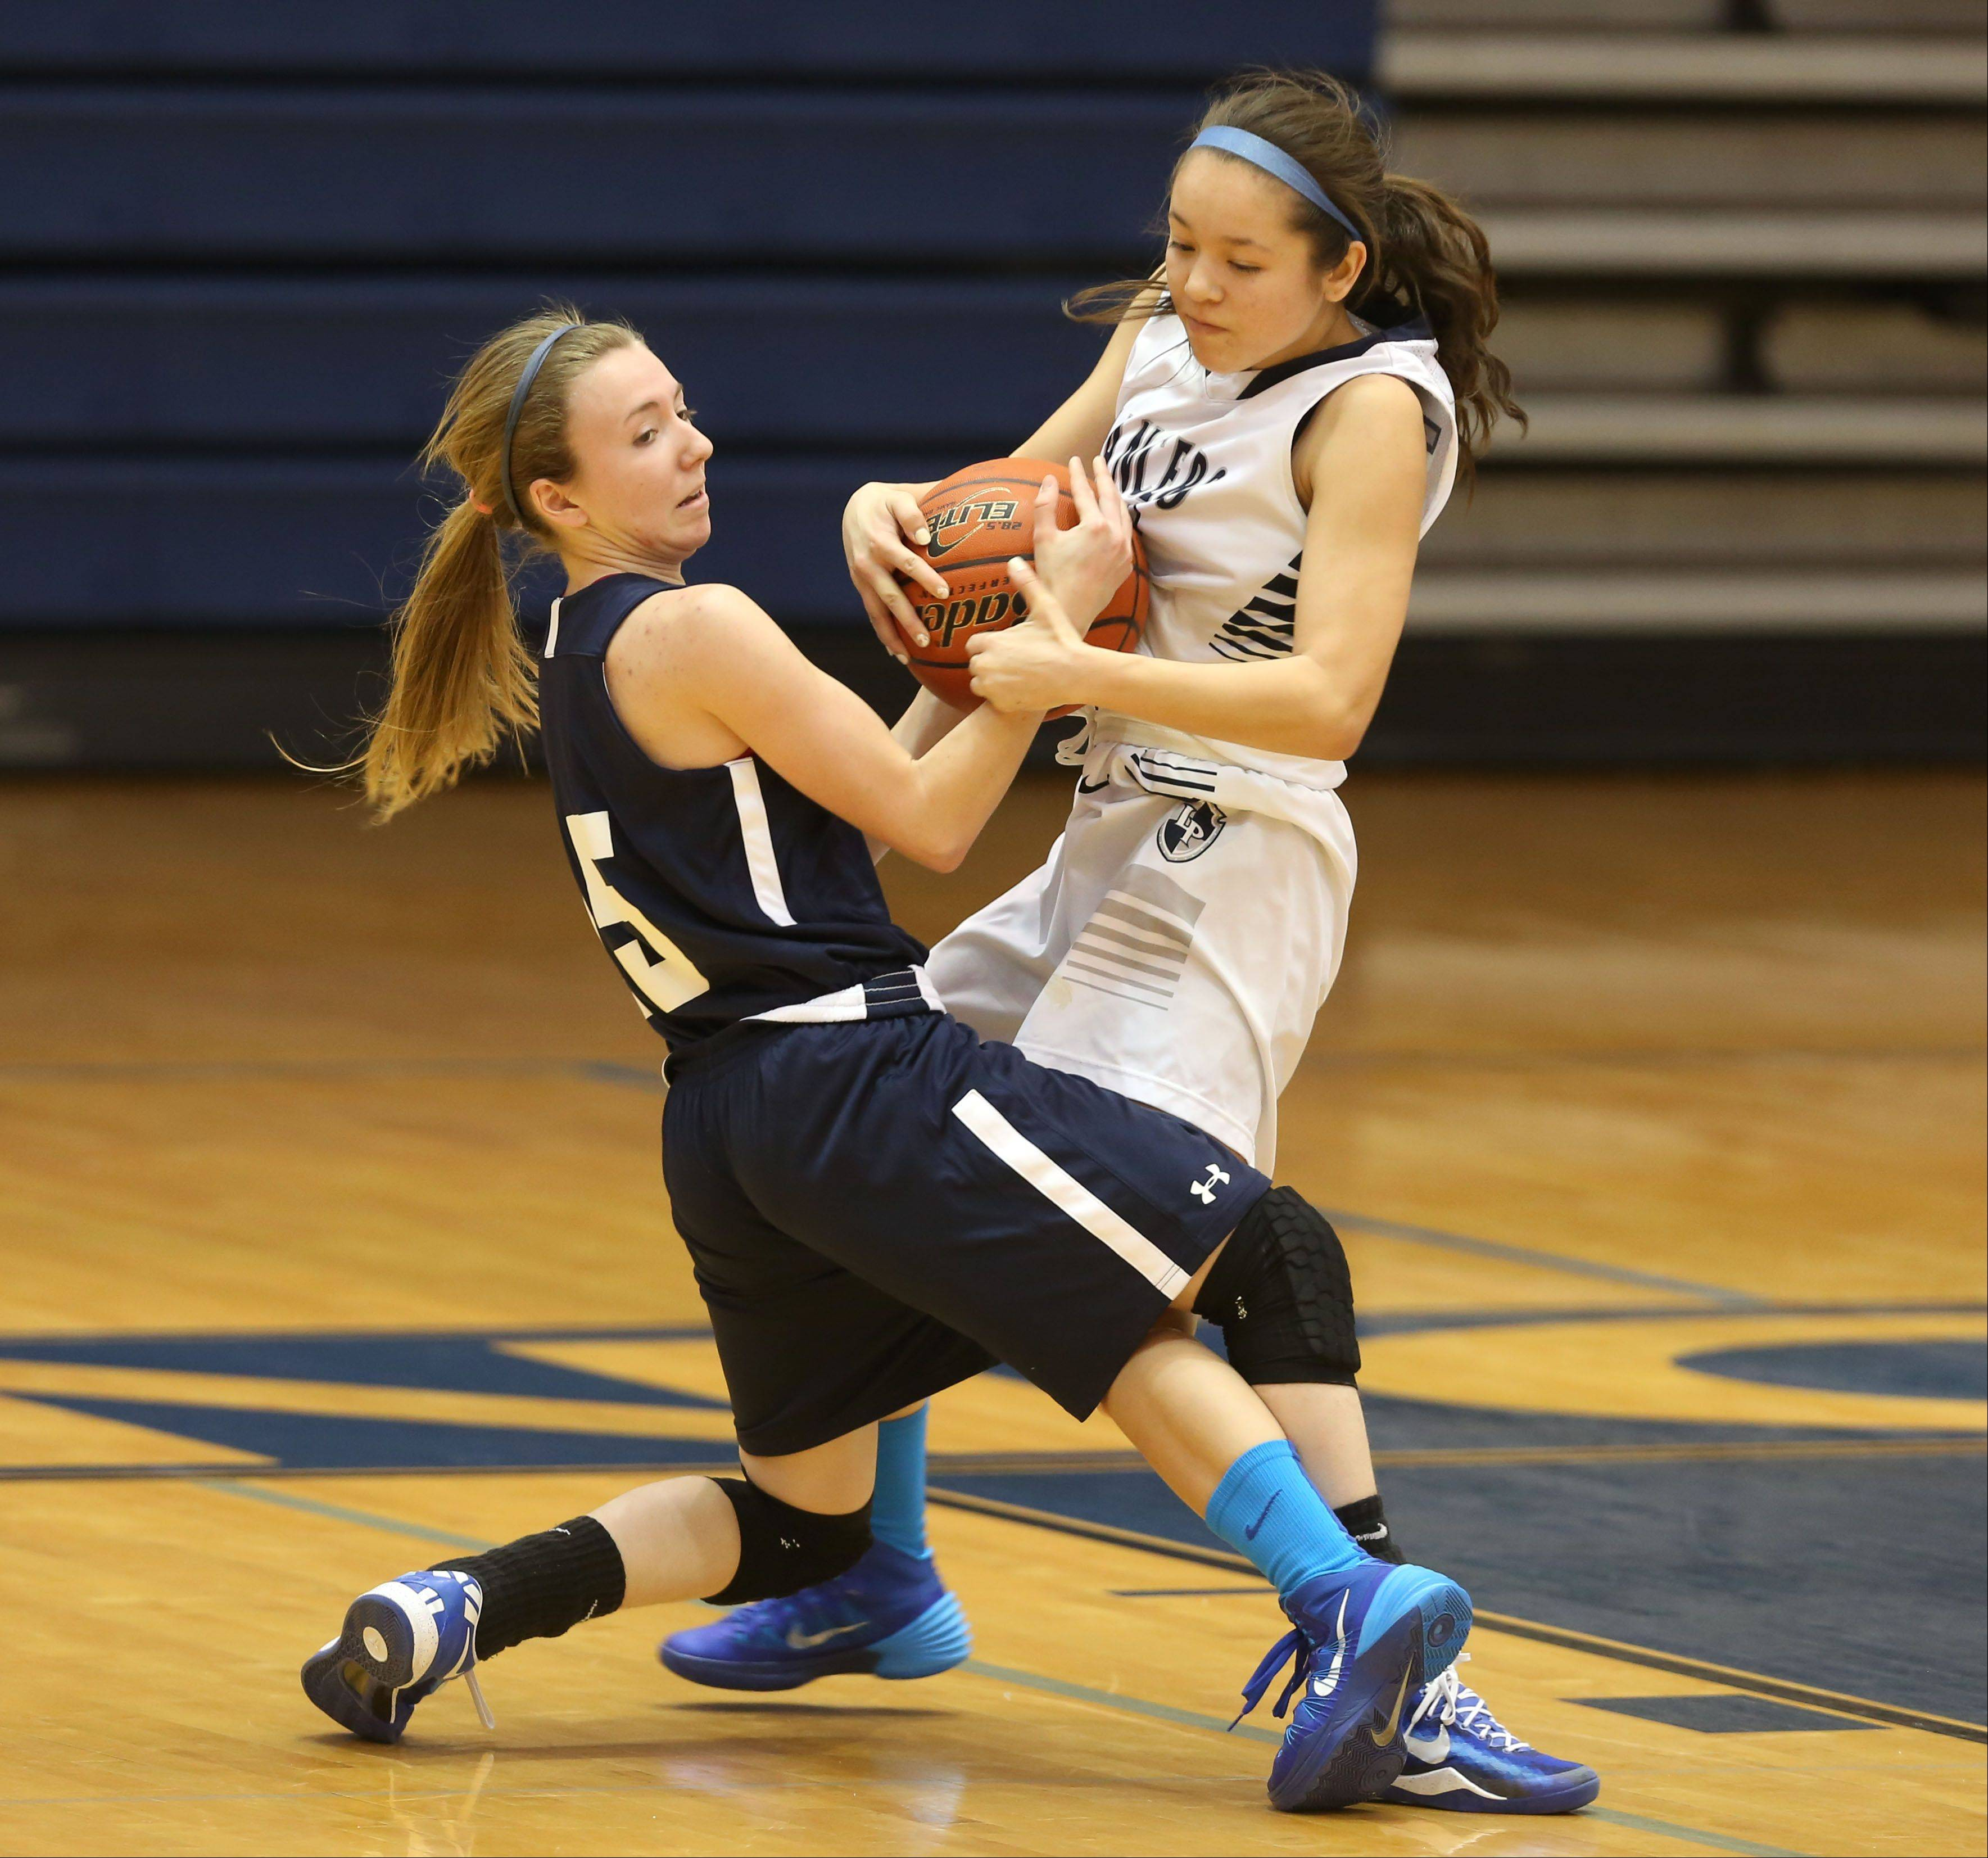 Addison Trail's Connie Barkoulies, left, fights for ball control with Lake Park's Kelly Adams during Friday's basketball game in Roselle.